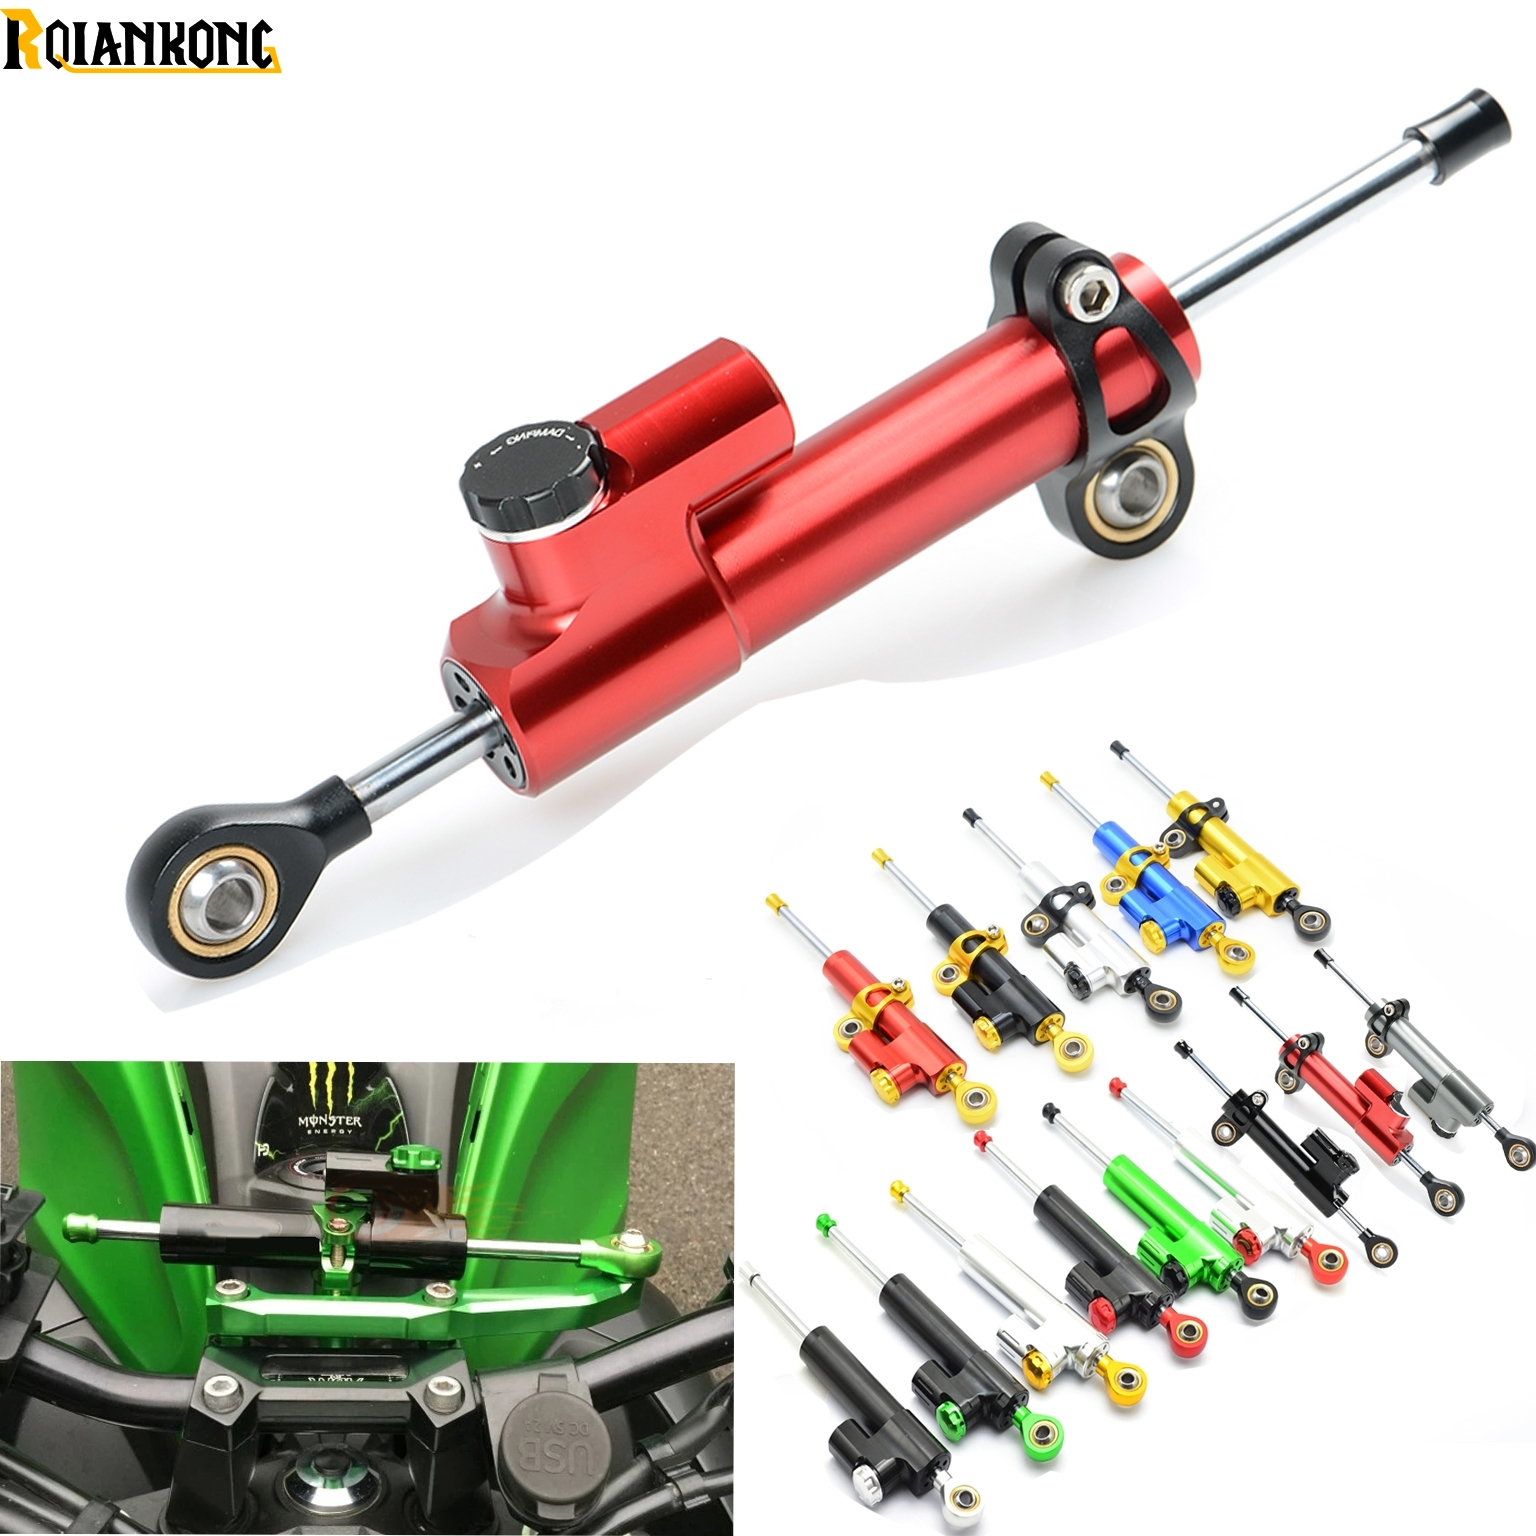 CNC Aluminum Motorcycle Steering Damper Stabilizer Linear Safe Control for BMW F650GS F700GS F800GS F800GT F800R F800S F800ST<br>